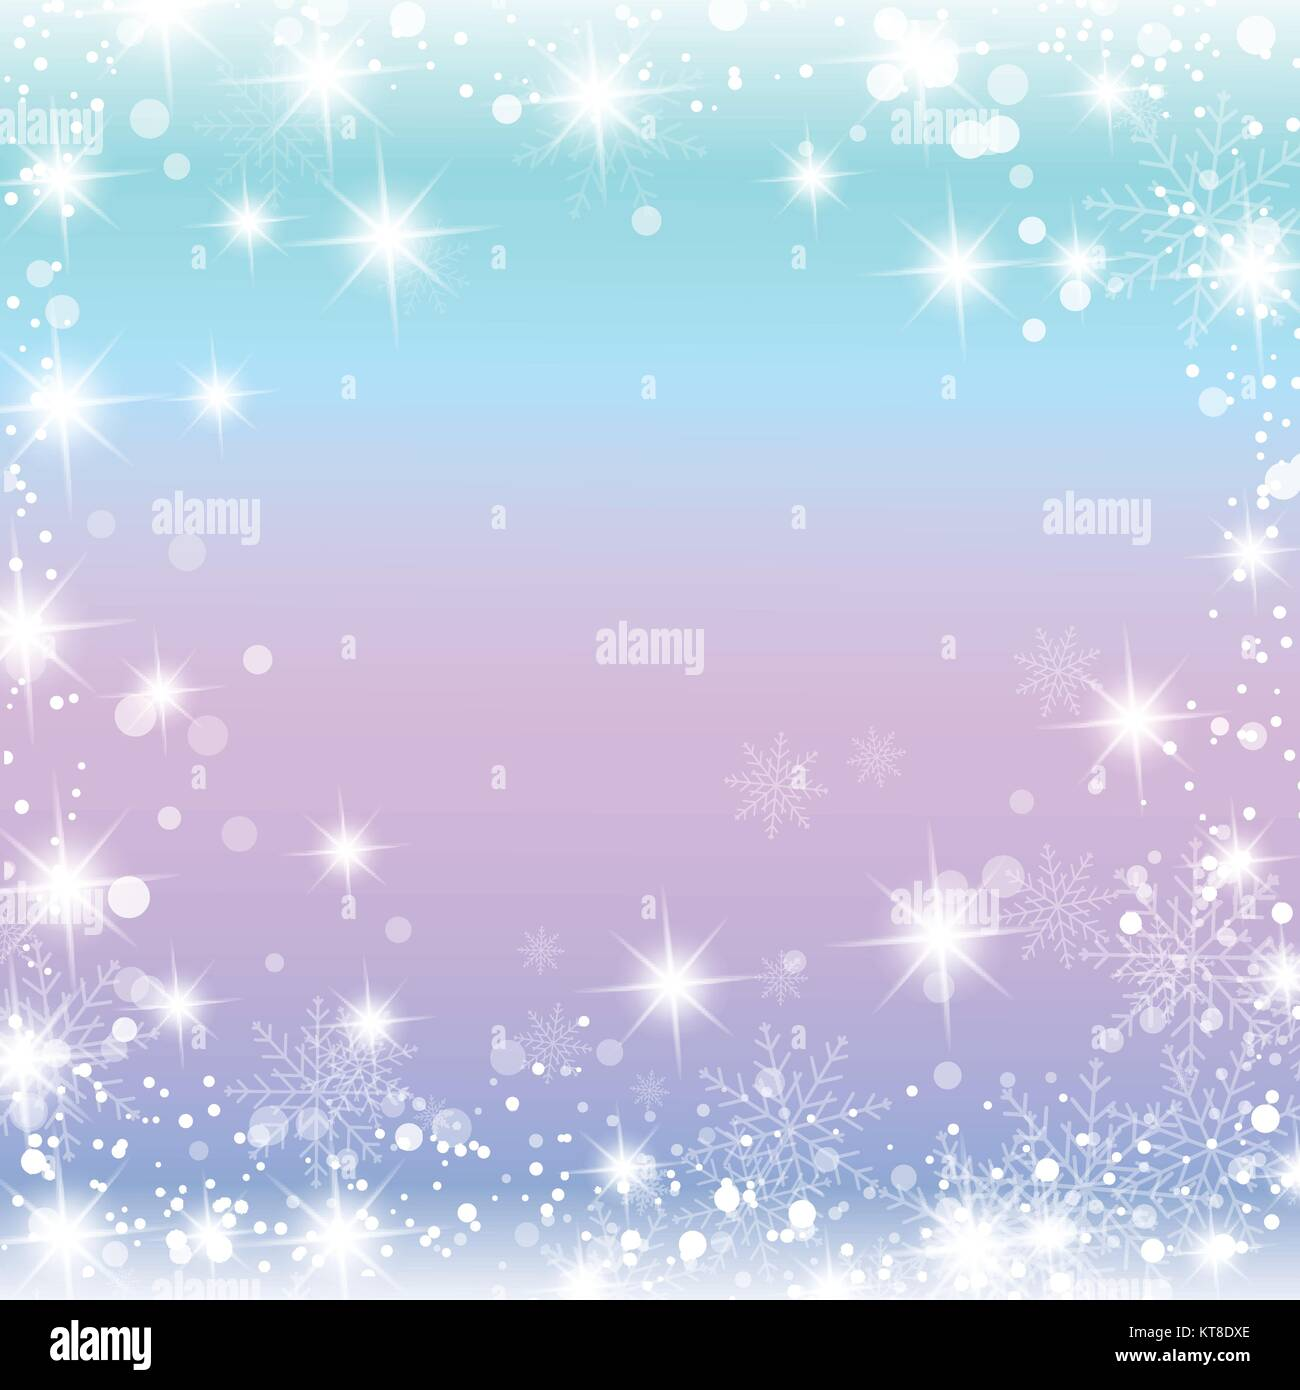 Beautiful, gentle winter background with snowflakes, stars. For postcards, invitations, business cards discount - Stock Vector